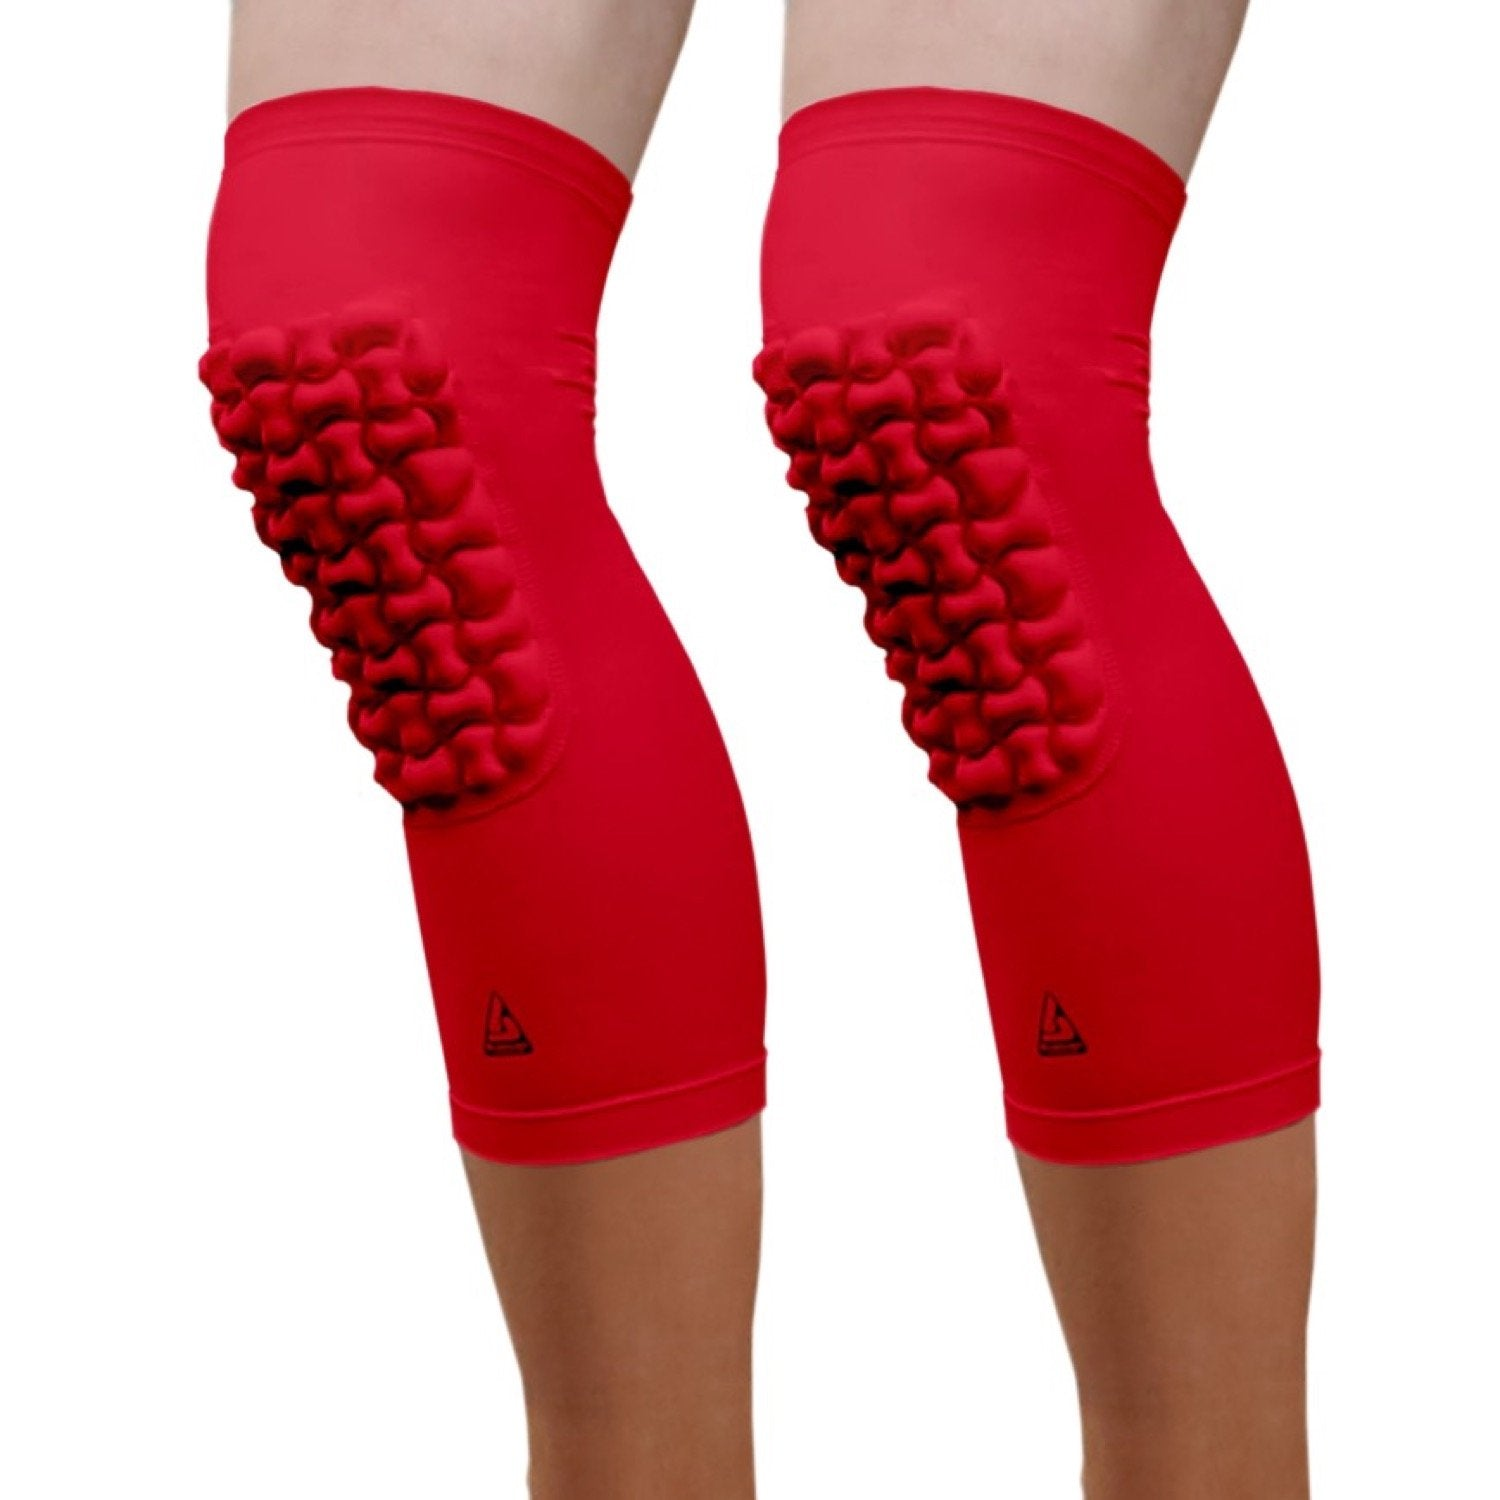 padded knee sleeve red knee